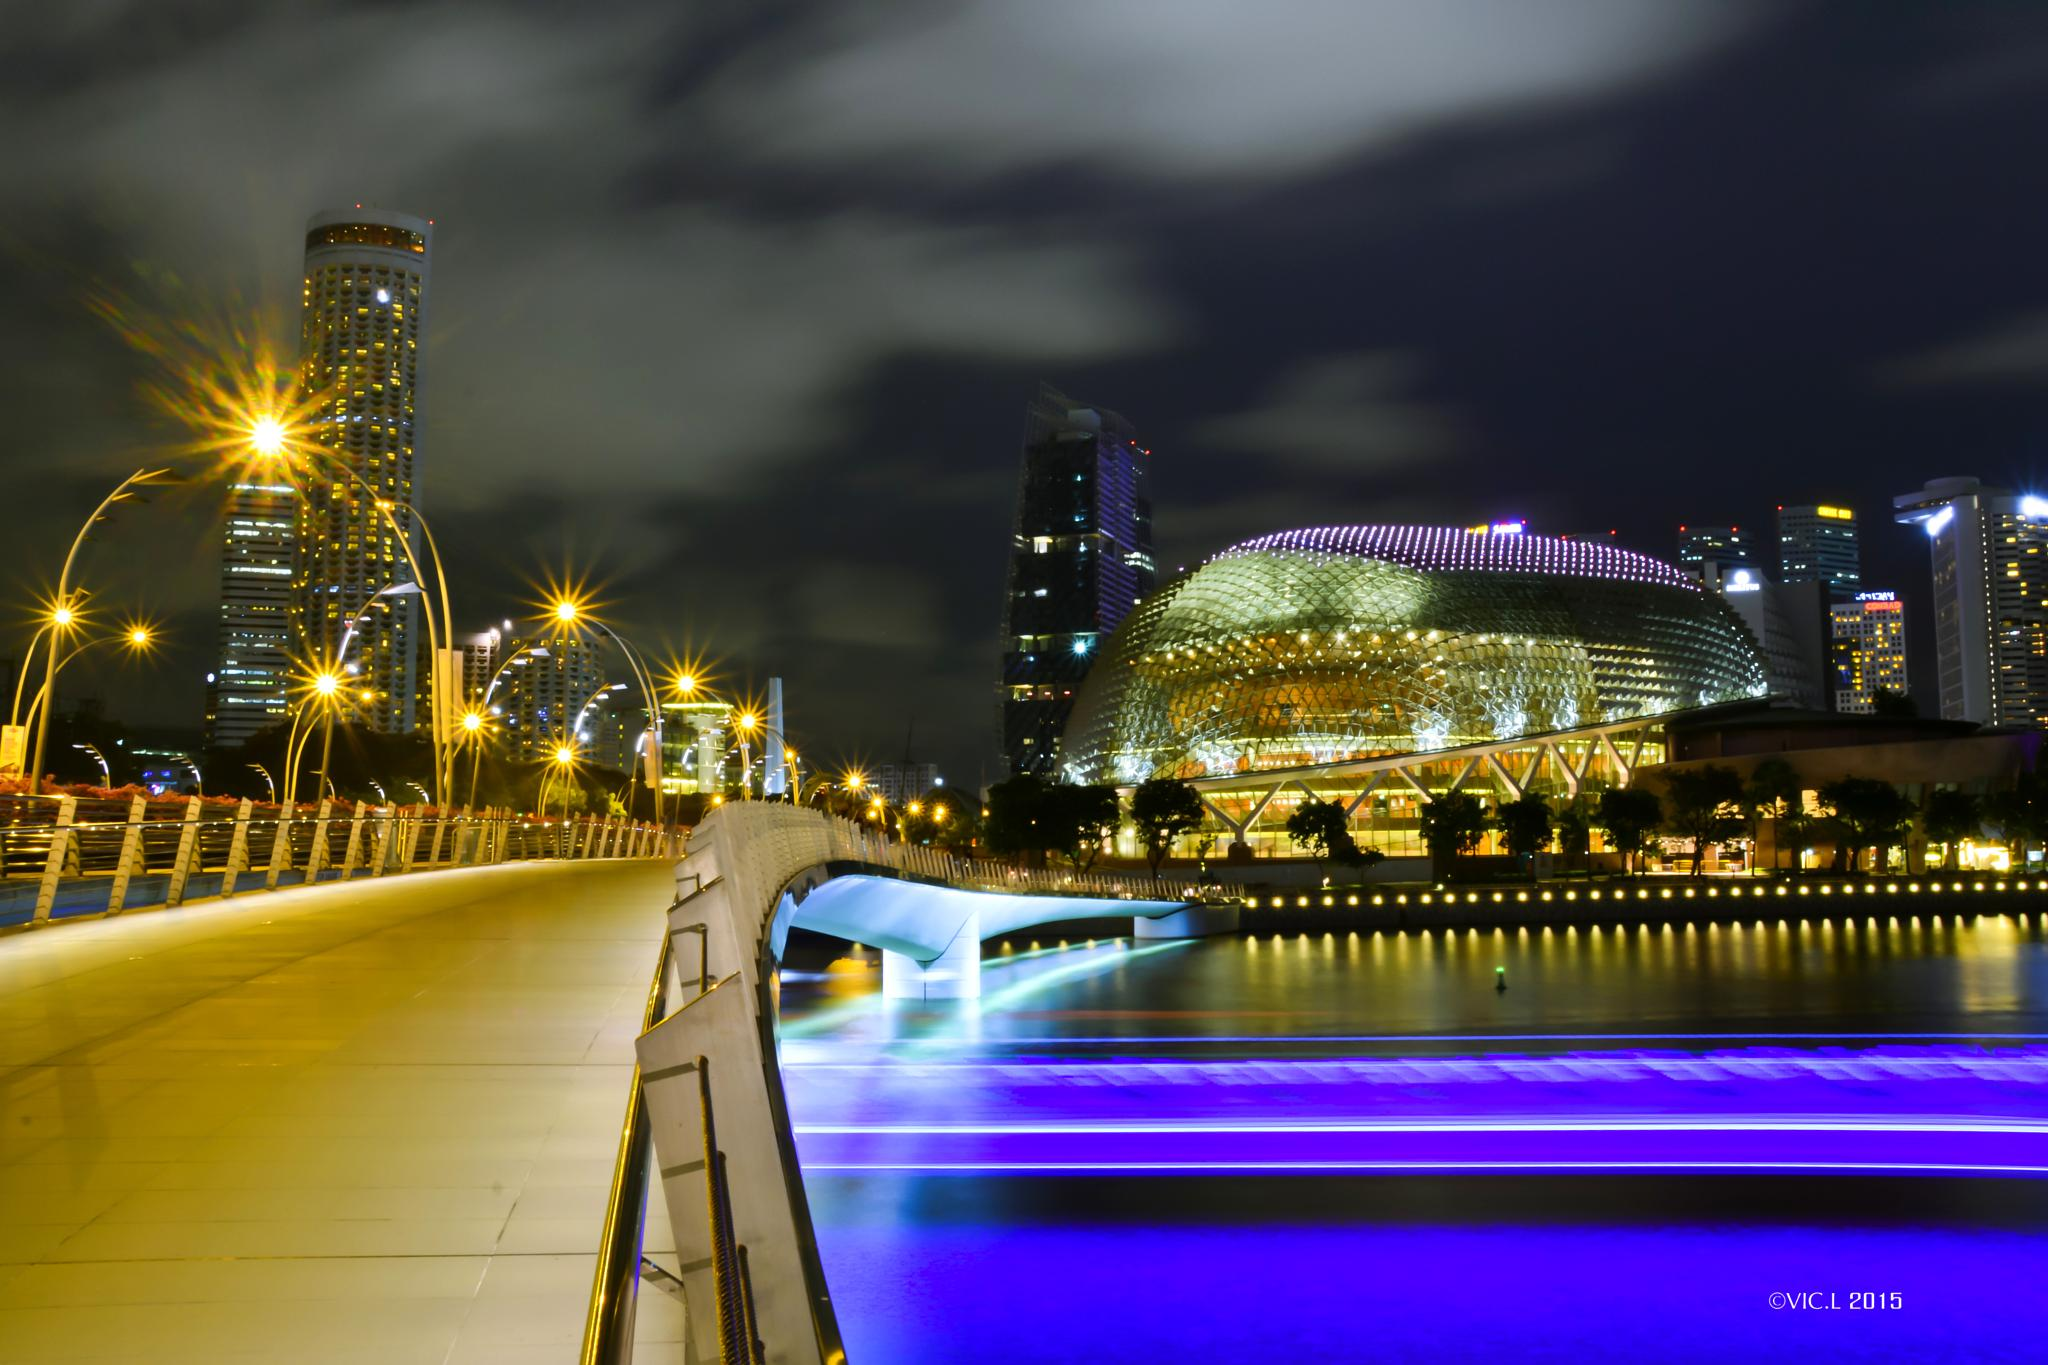 Boat Trail @ Singapore River by VIC.L